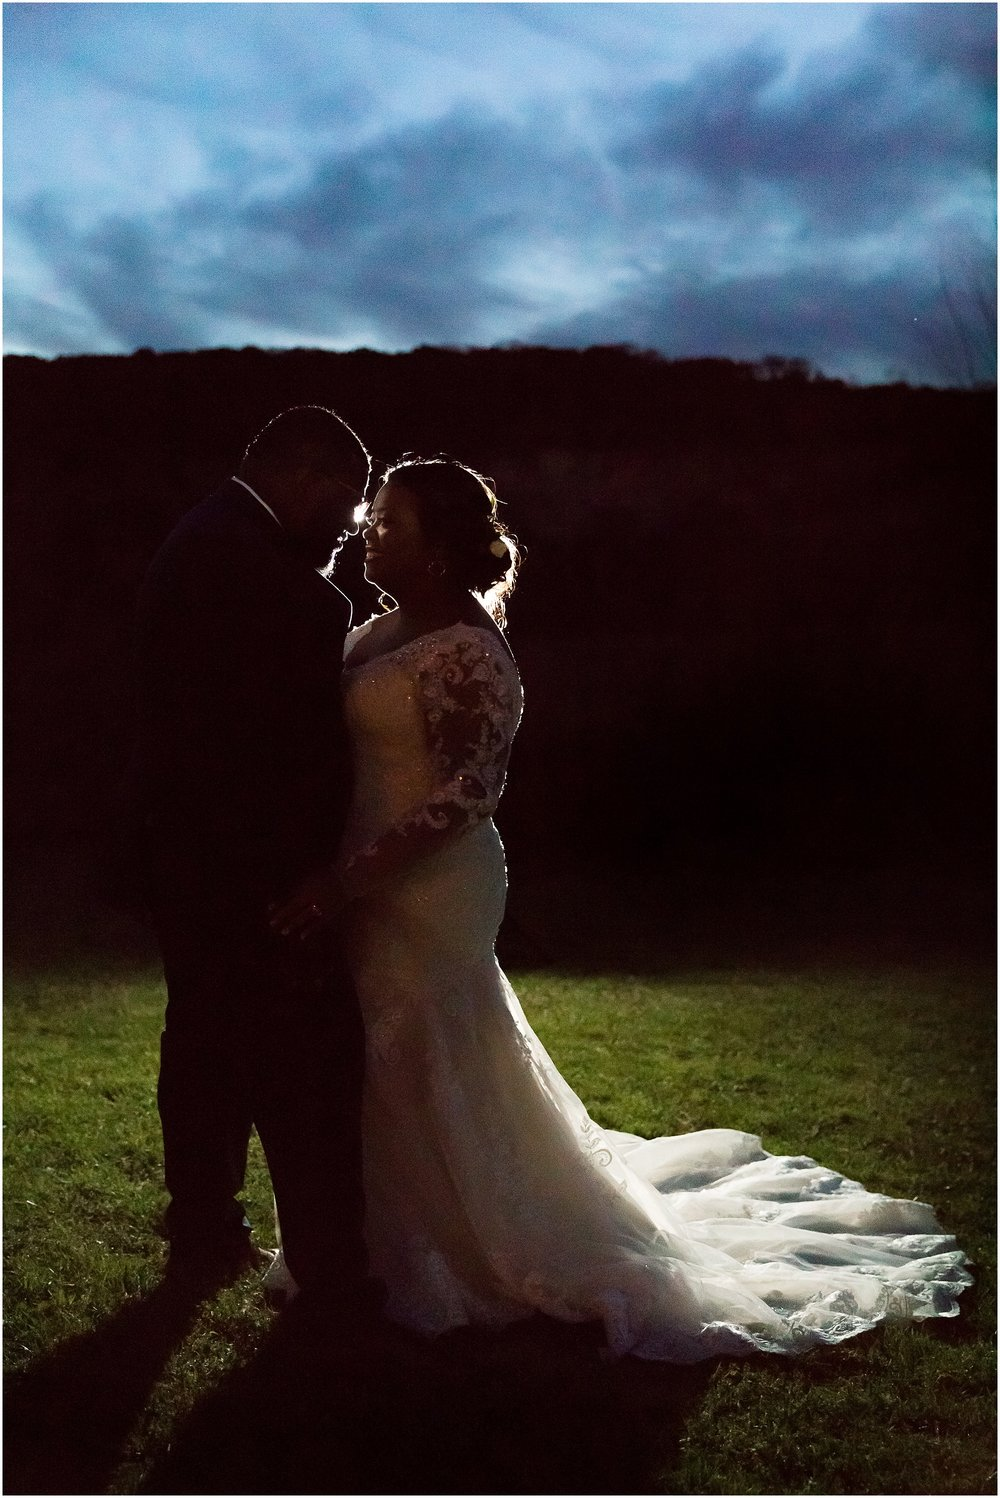 A groom and his bride embrace in the near dark while back lit dramatically with flash in front of the cliffs by the Brazos River in Waco, Texas - Jason & melaina Photography - www.jasonandmelaina.com